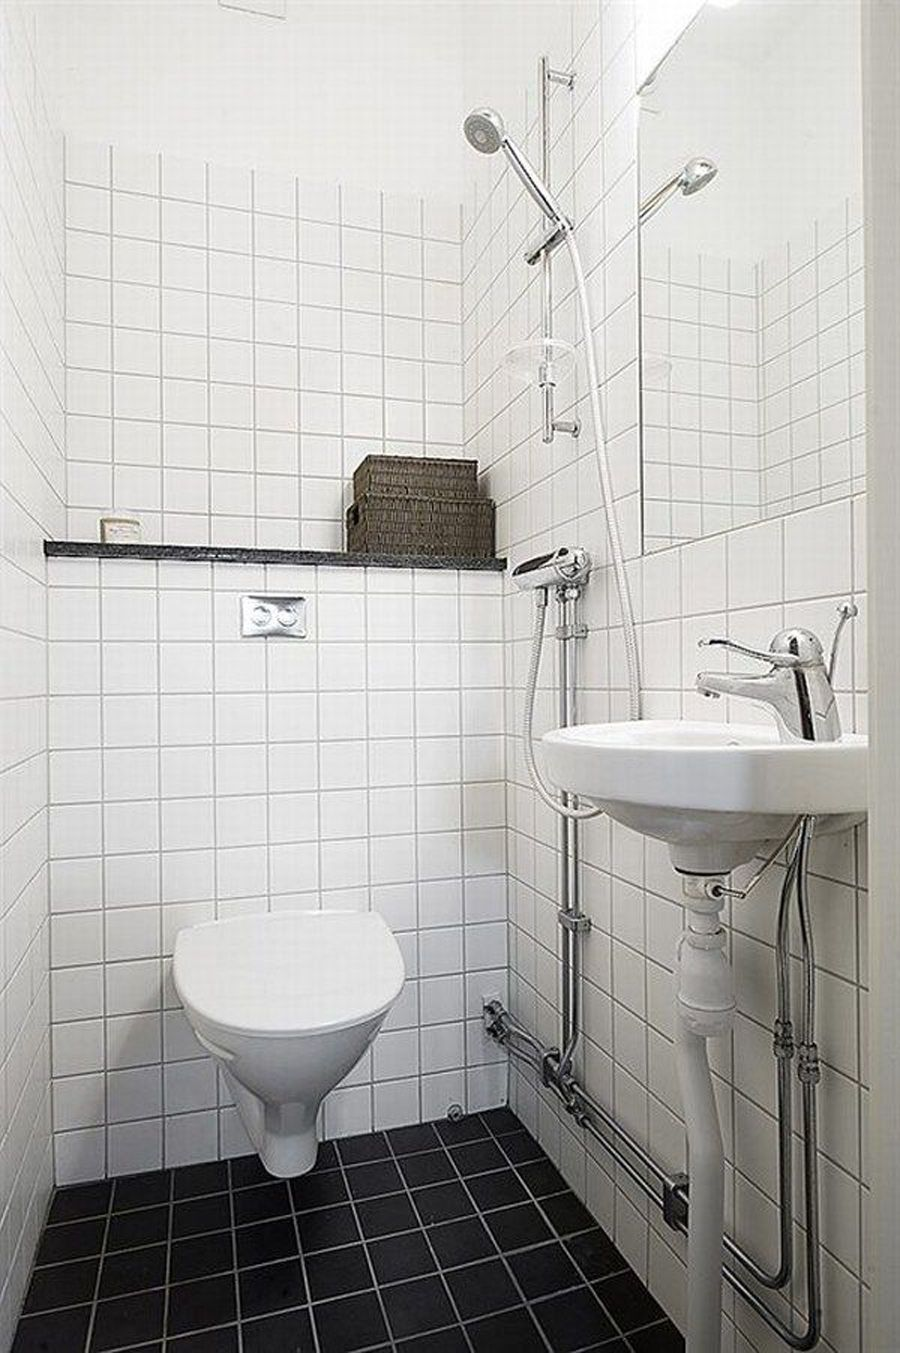 Bathroom designs black and white tiles - Bathroom Interesting White Tile Design